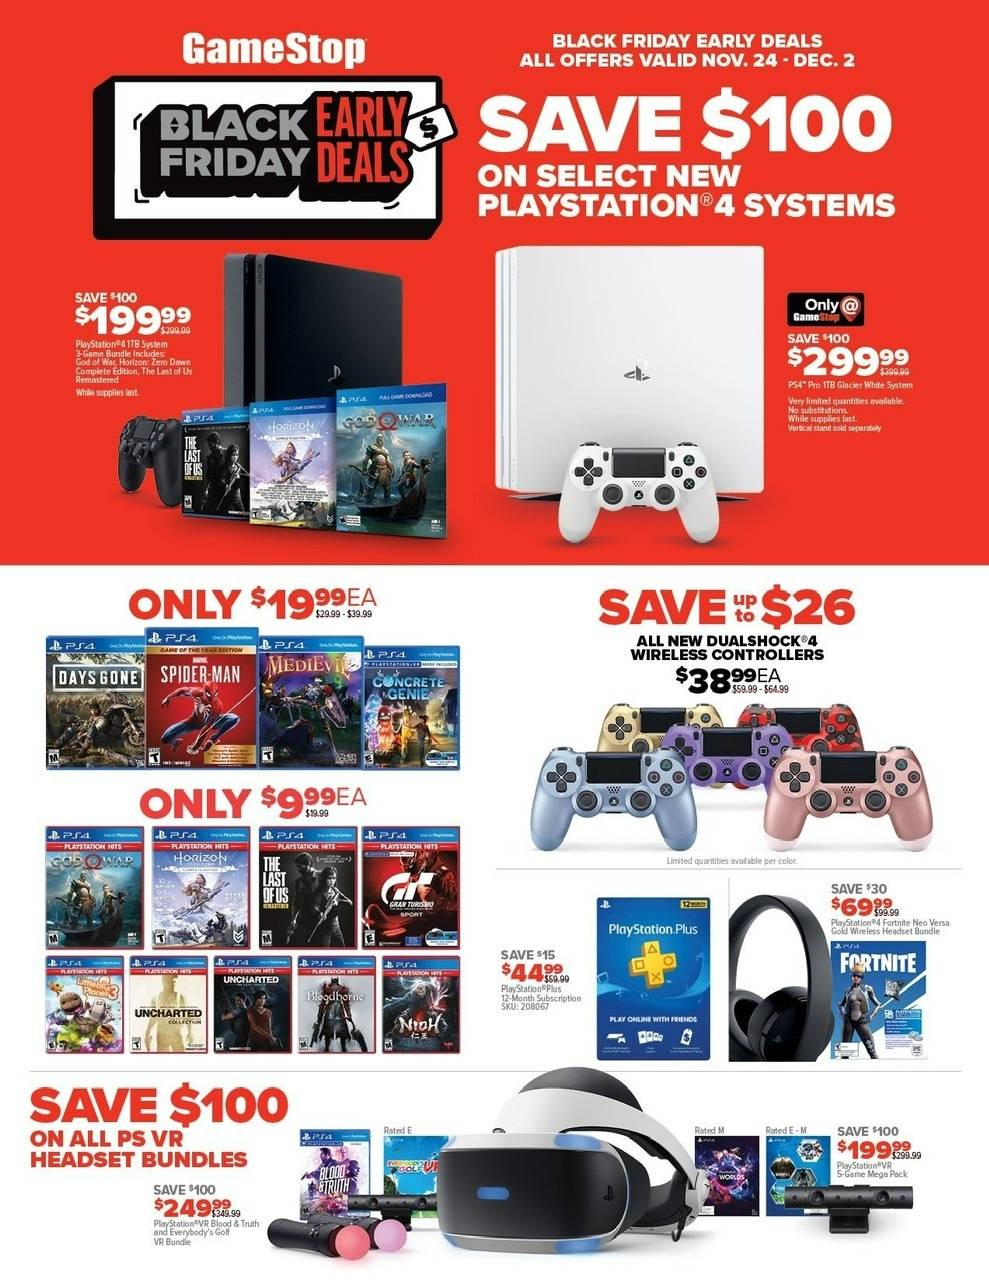 GameStop: Upcoming Black Friday Video Game Deals Preview List